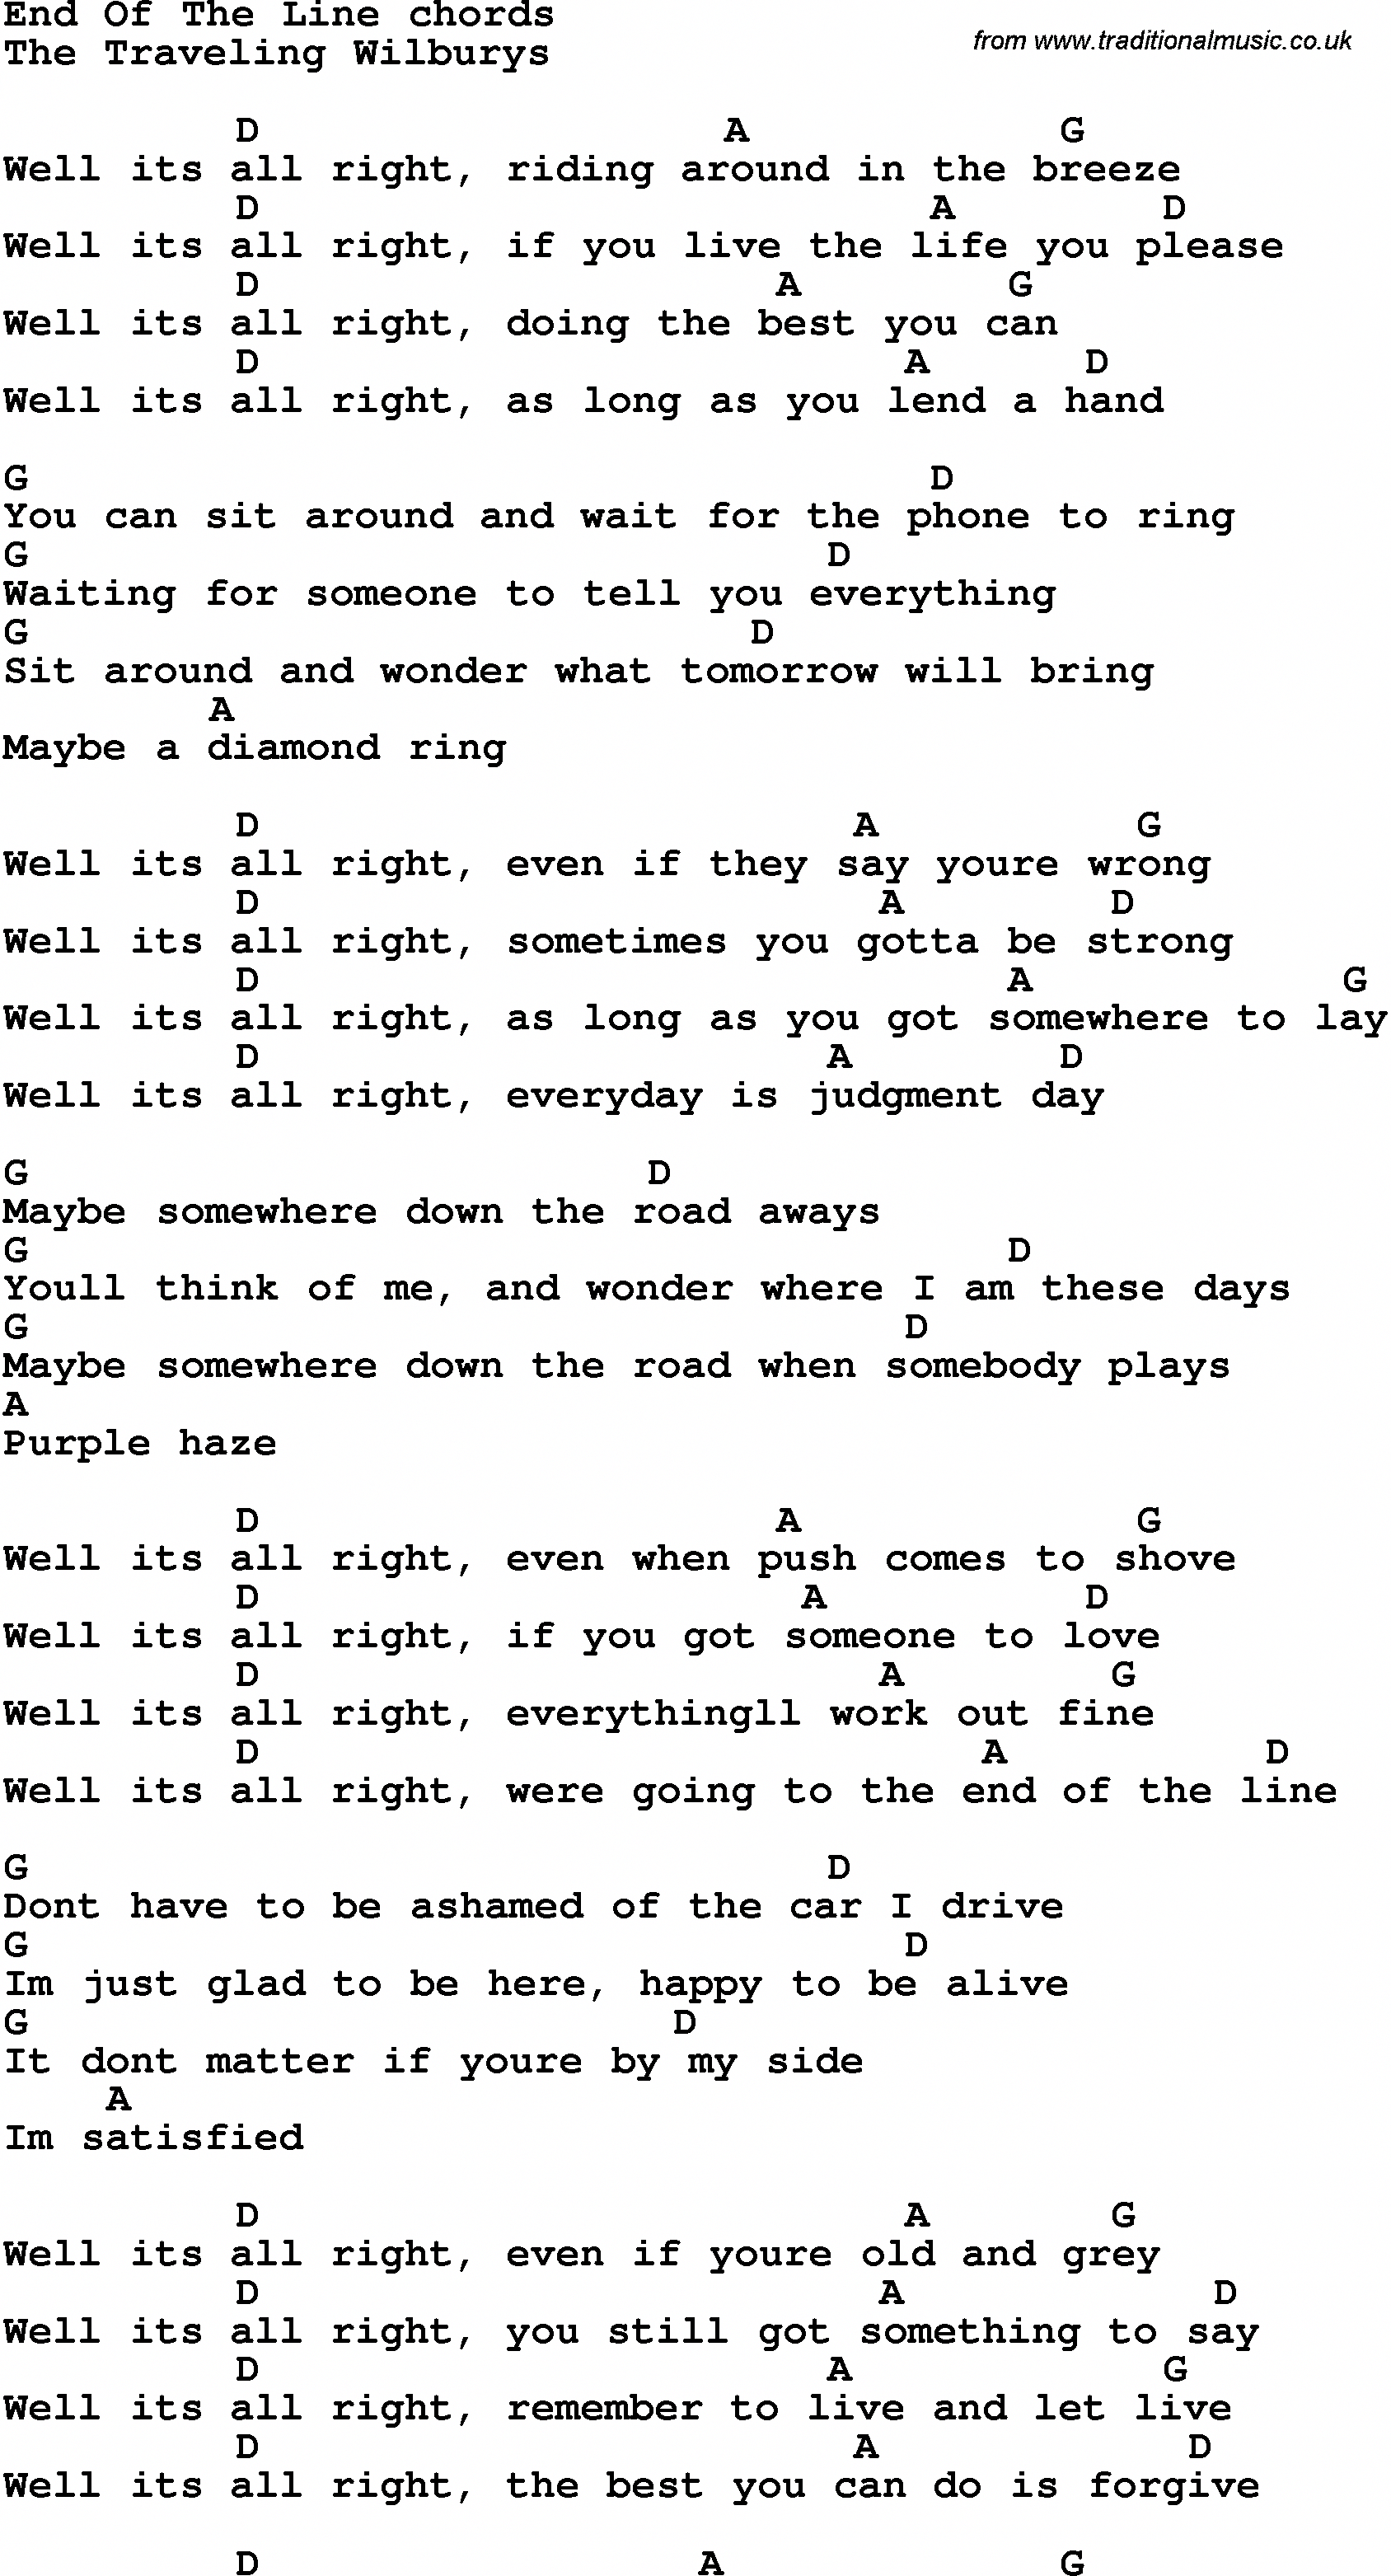 Song Lyrics with guitar chords for End Of The Line #ukulelelessons